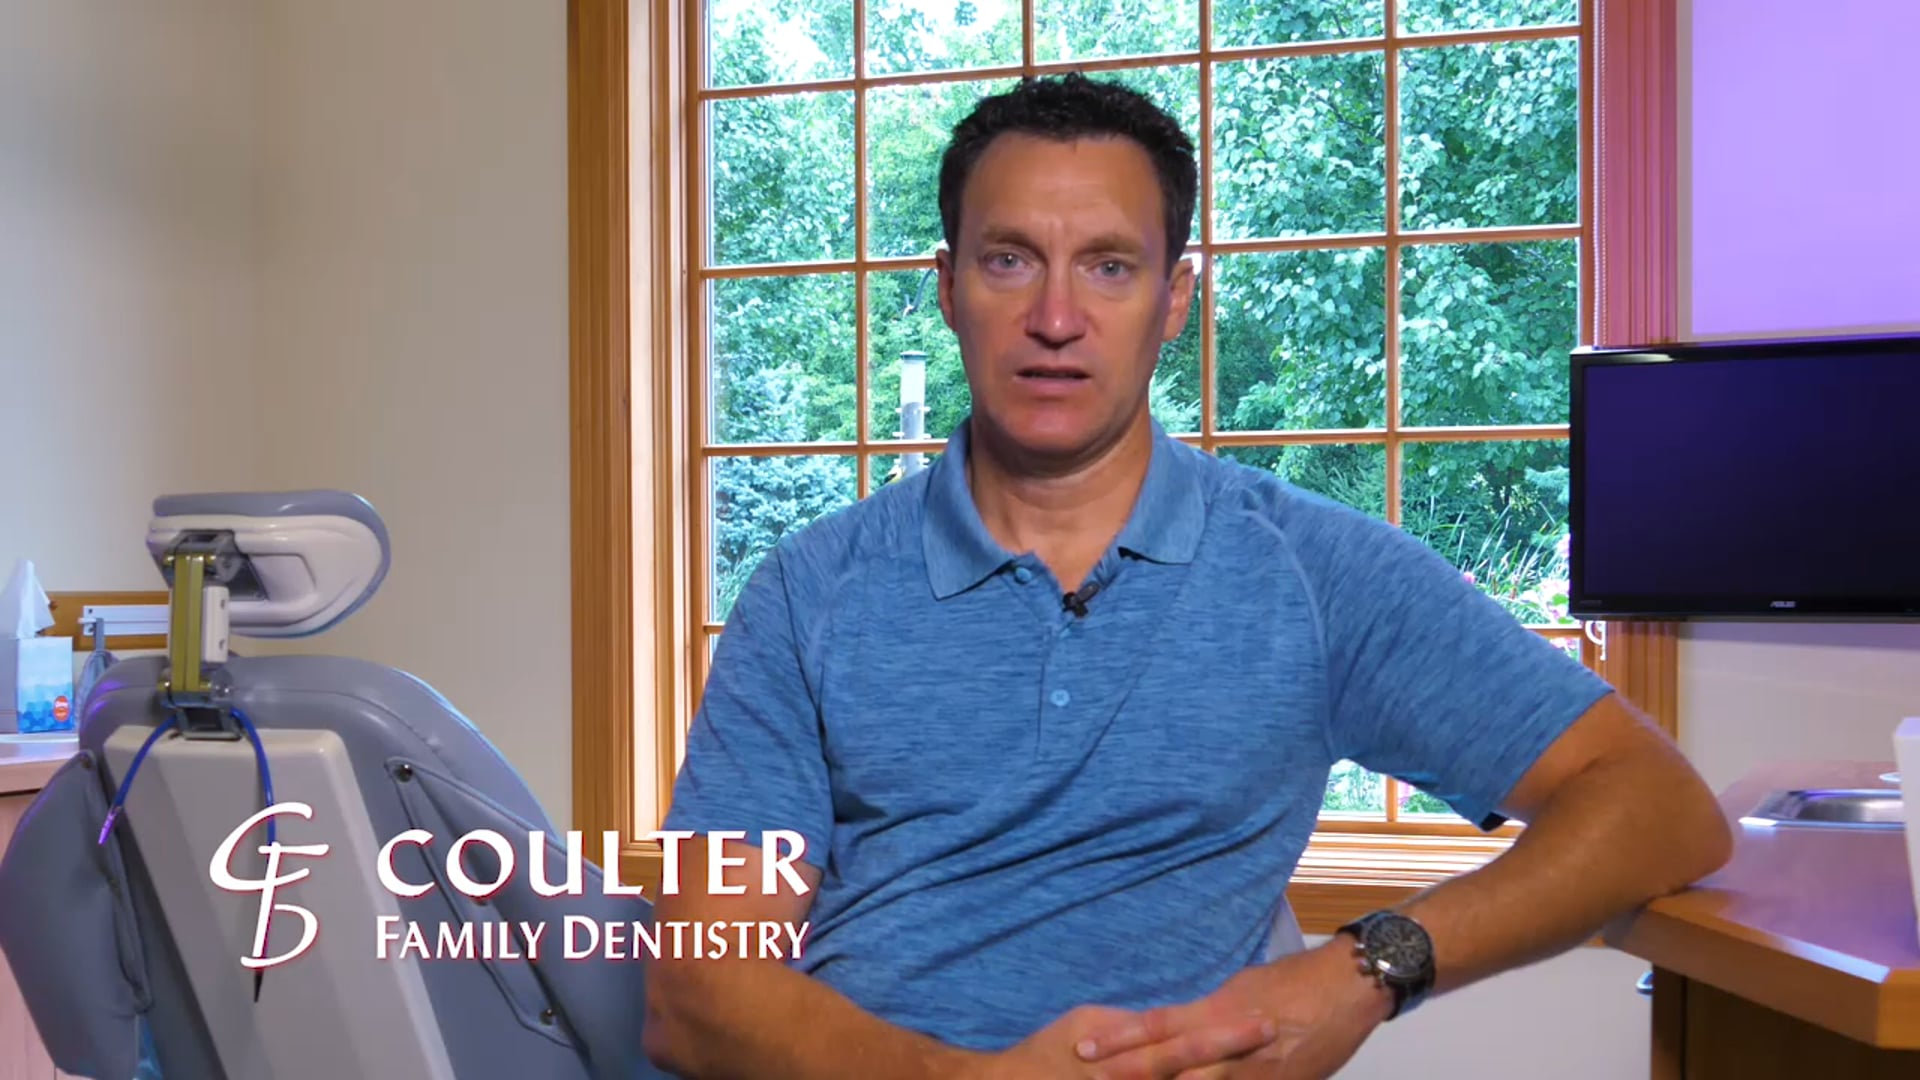 Technology at Coulter Family Dentistry